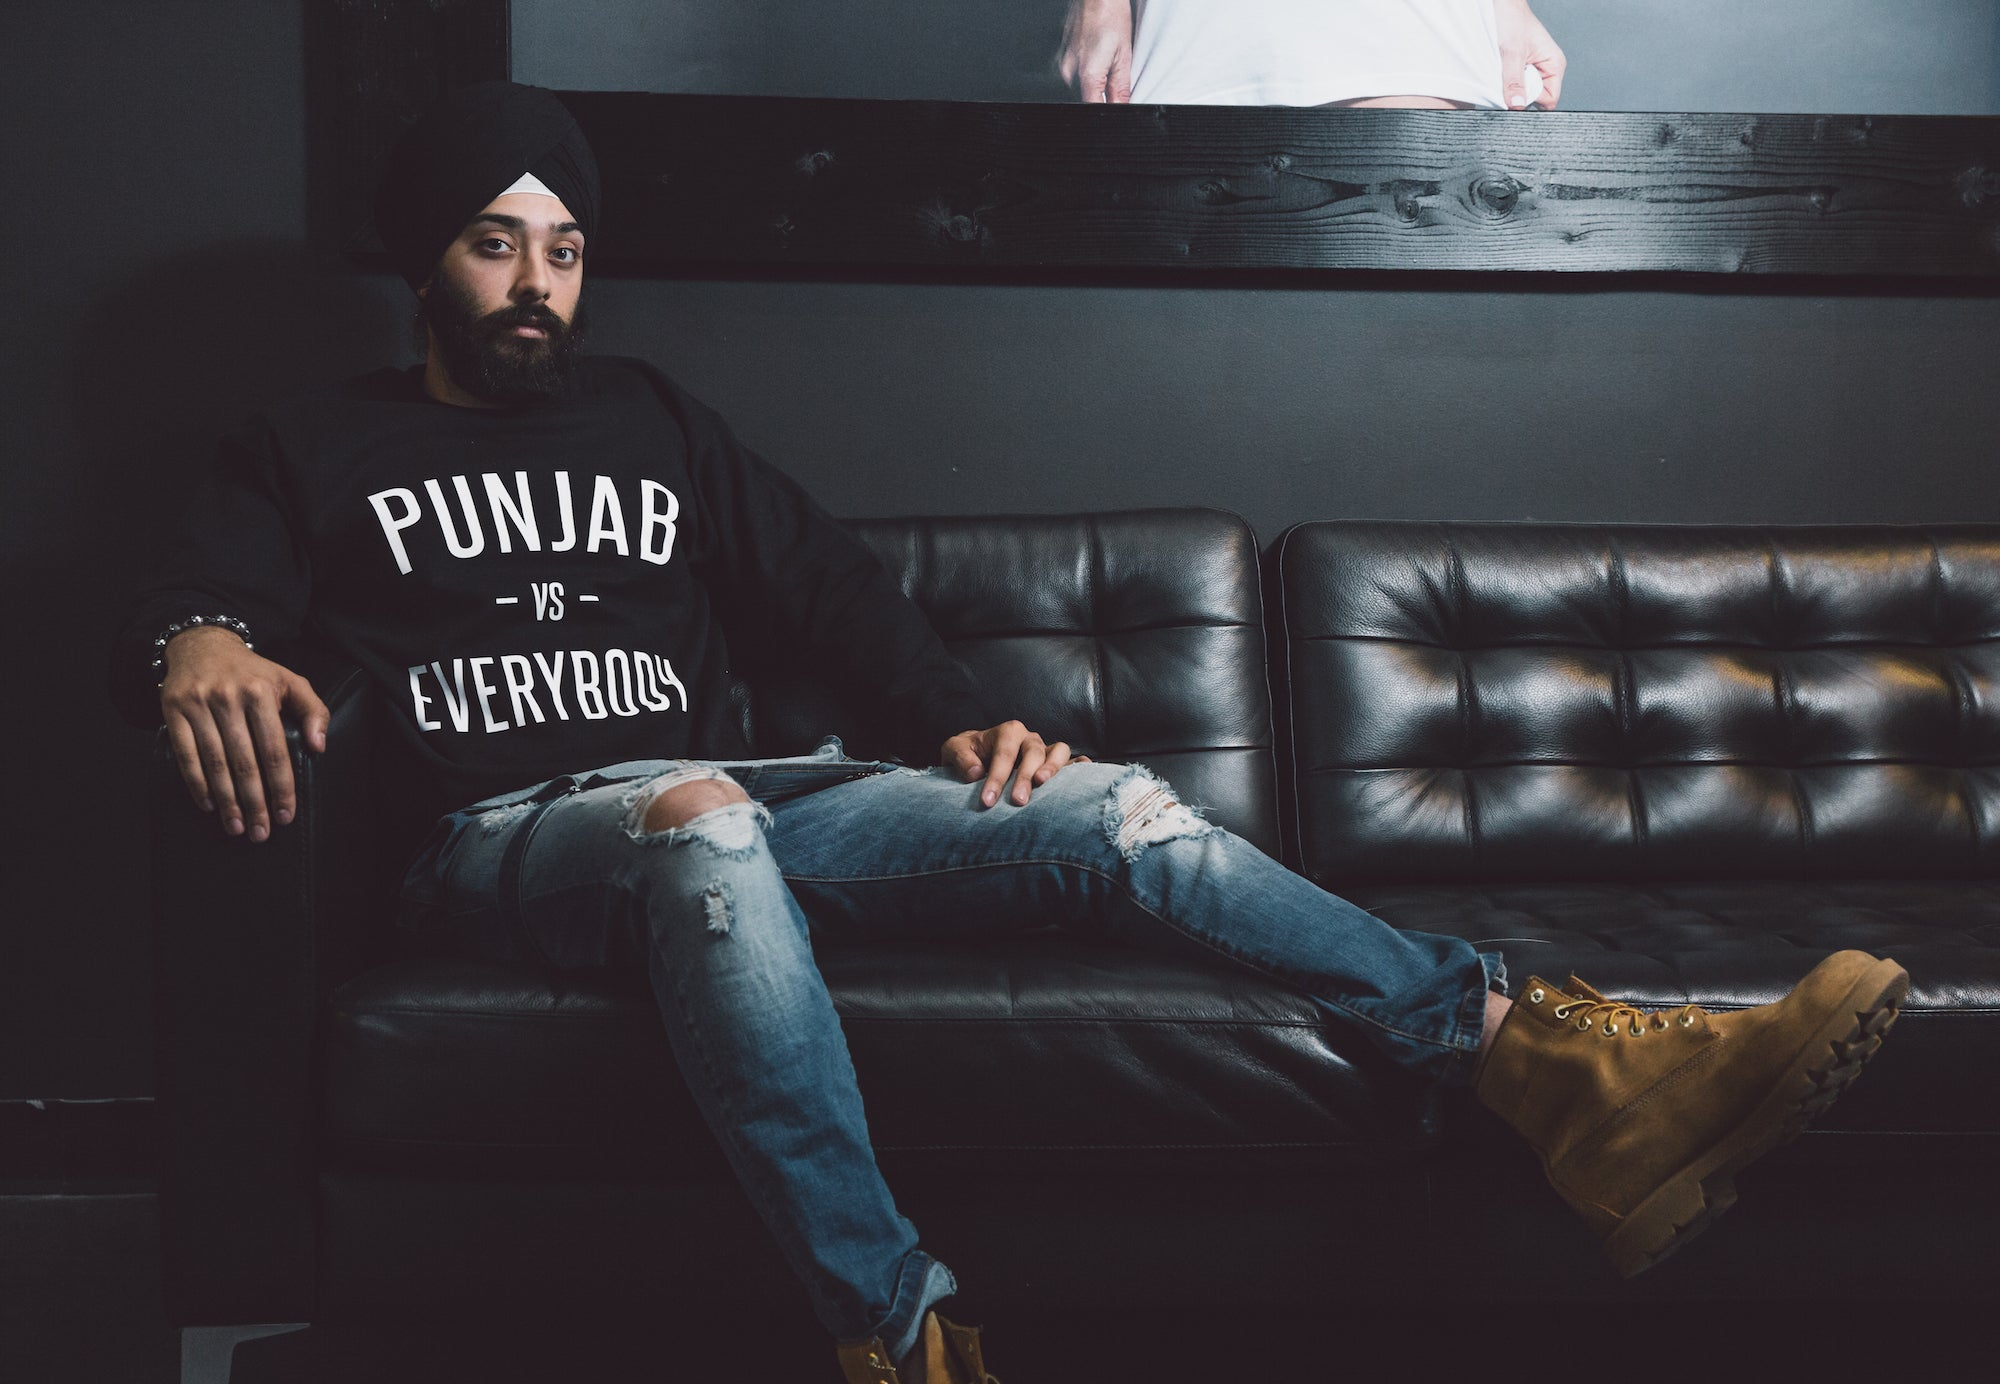 Punjab vs Everybody by Rootsgear